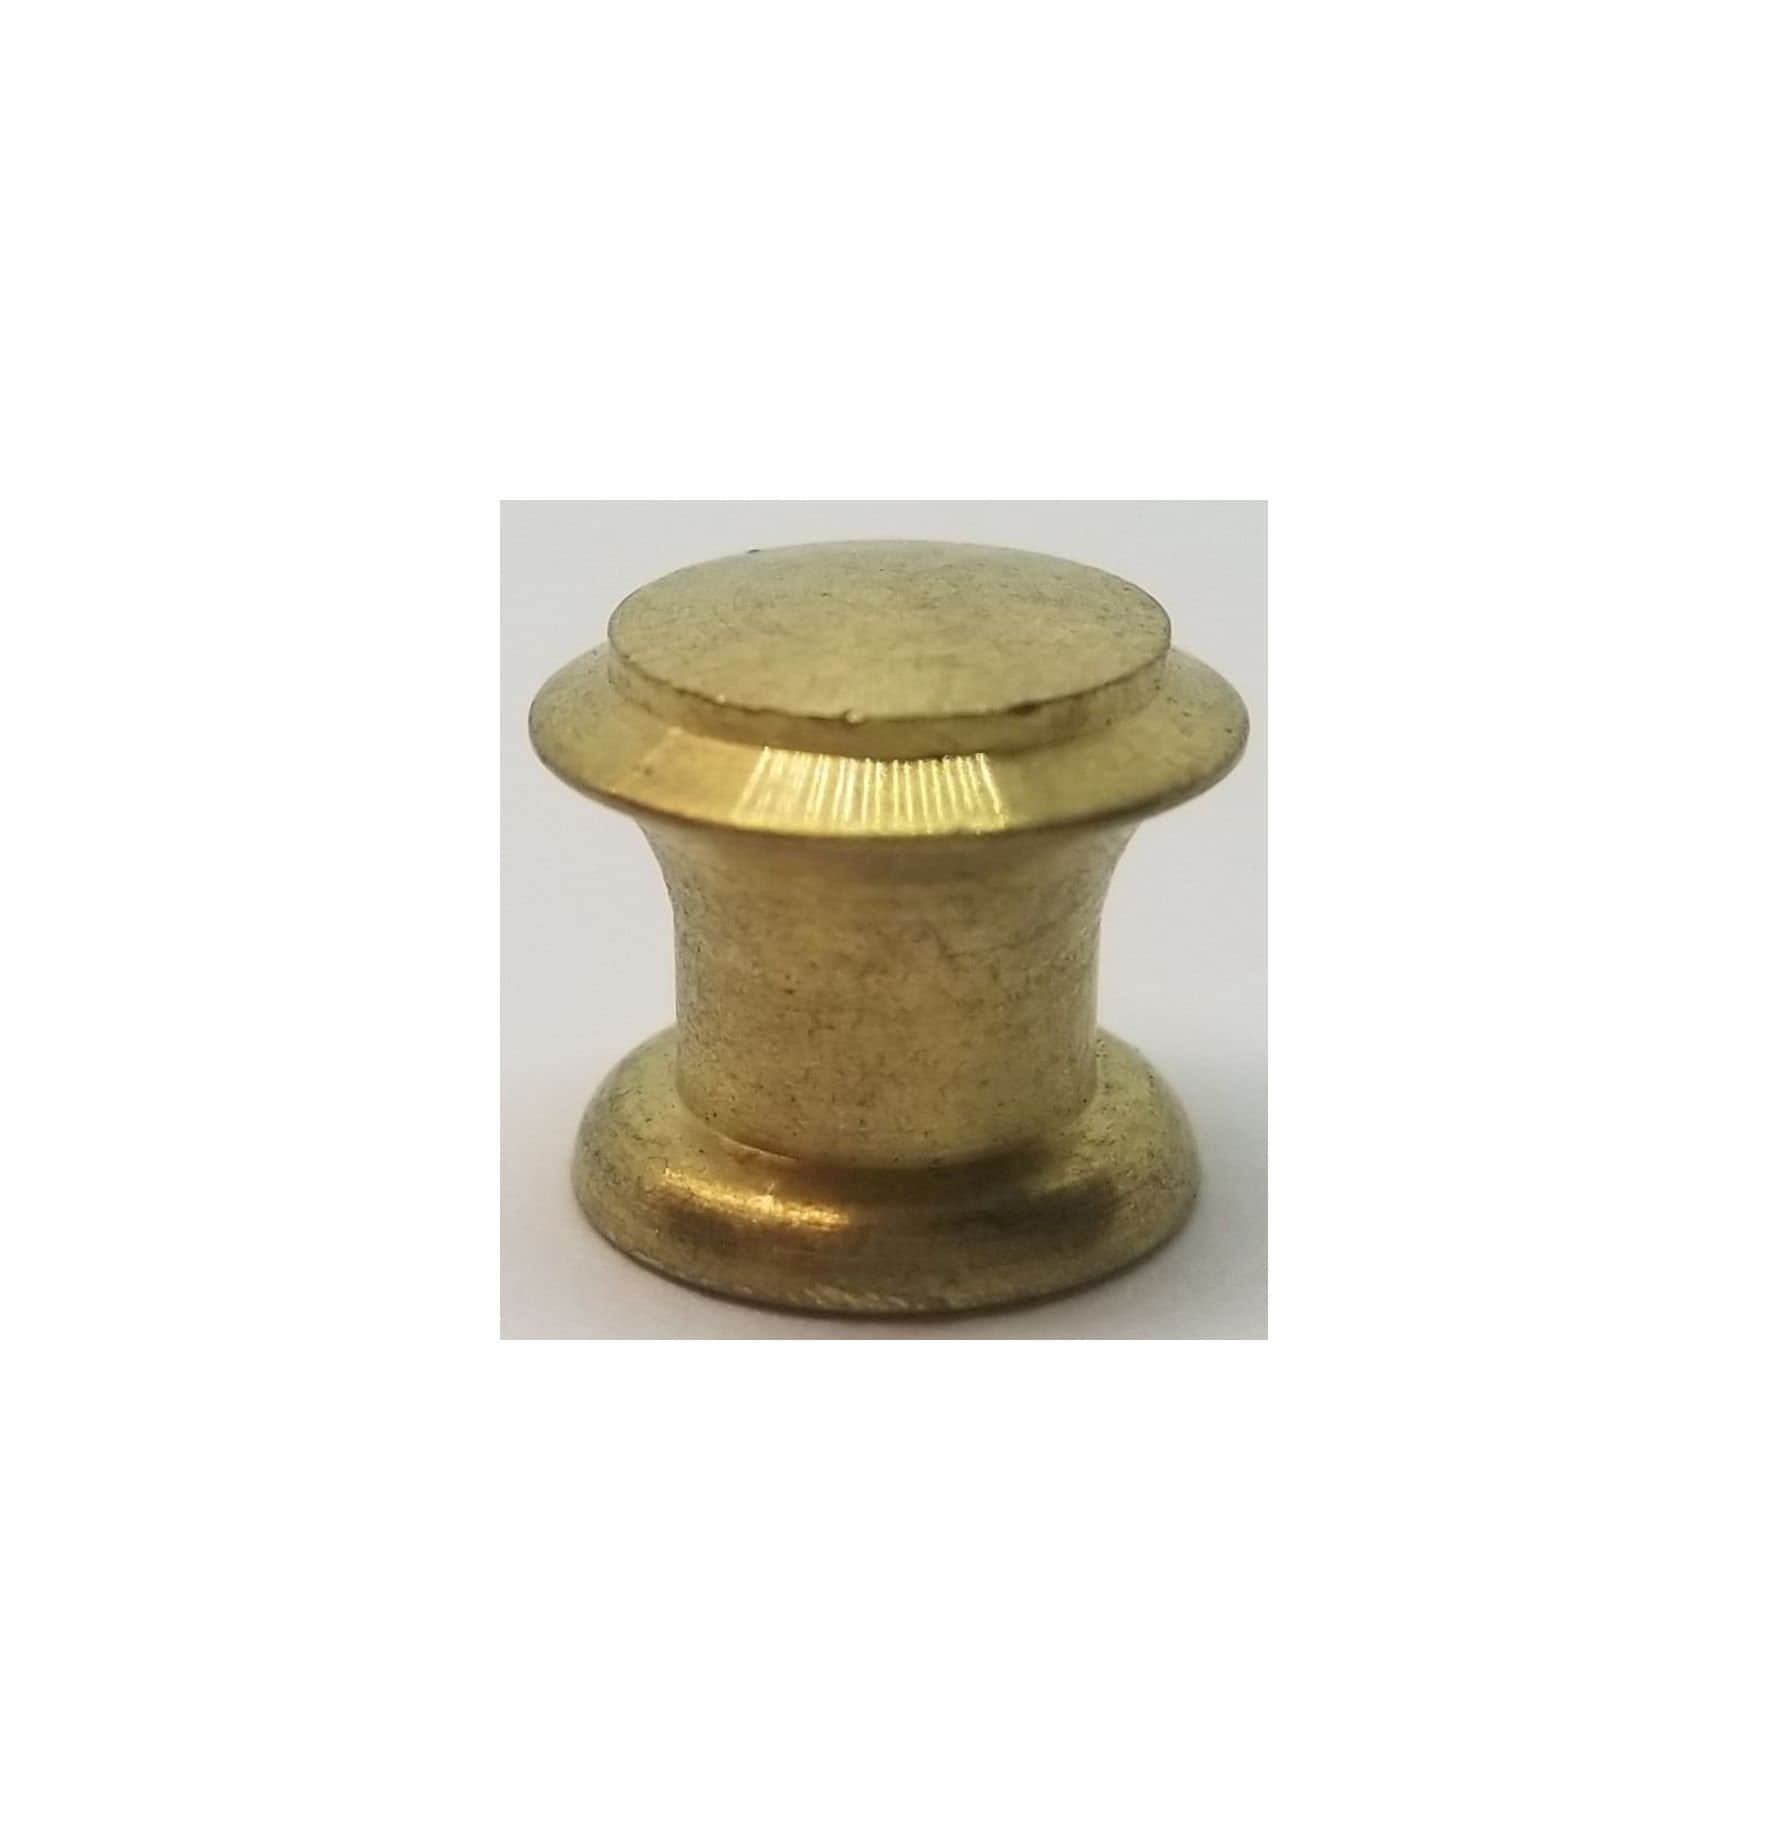 1 2 Half Inch Solid Brass Small Turned Round Knob Pull Drawer Door Desk Barrister Lawyer Bookcase Tiny Little